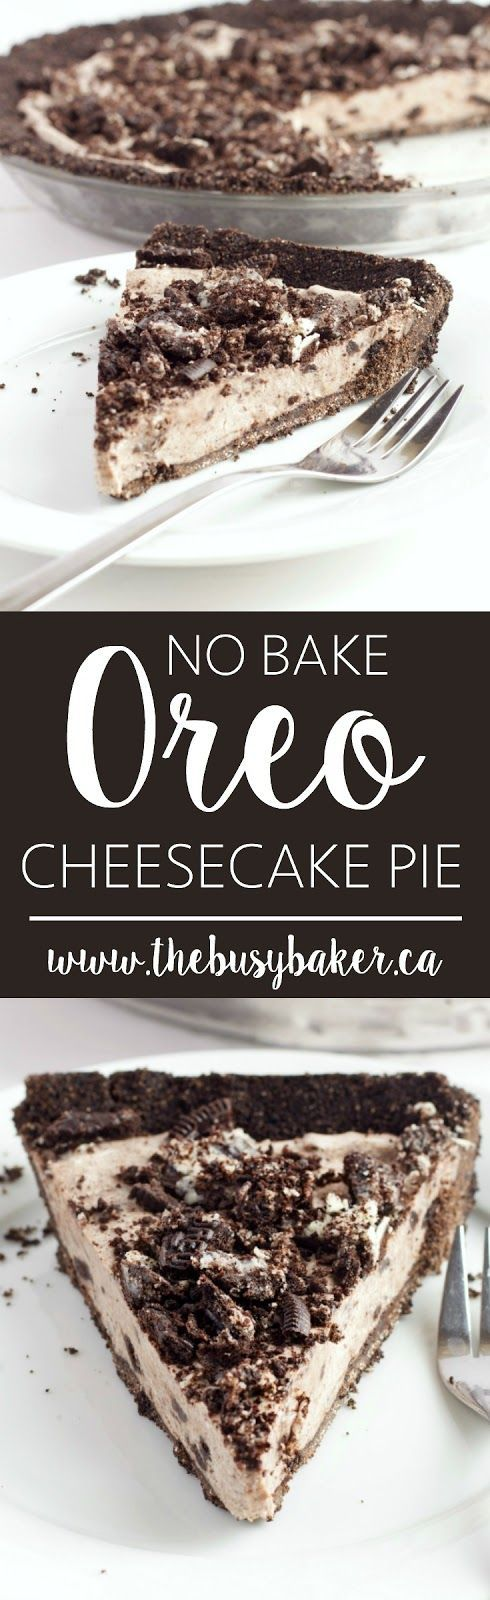 This No Bake Oreo Cheesecake Pie is the best easy, no-bake dessert for summer! www.thebusybaker.ca